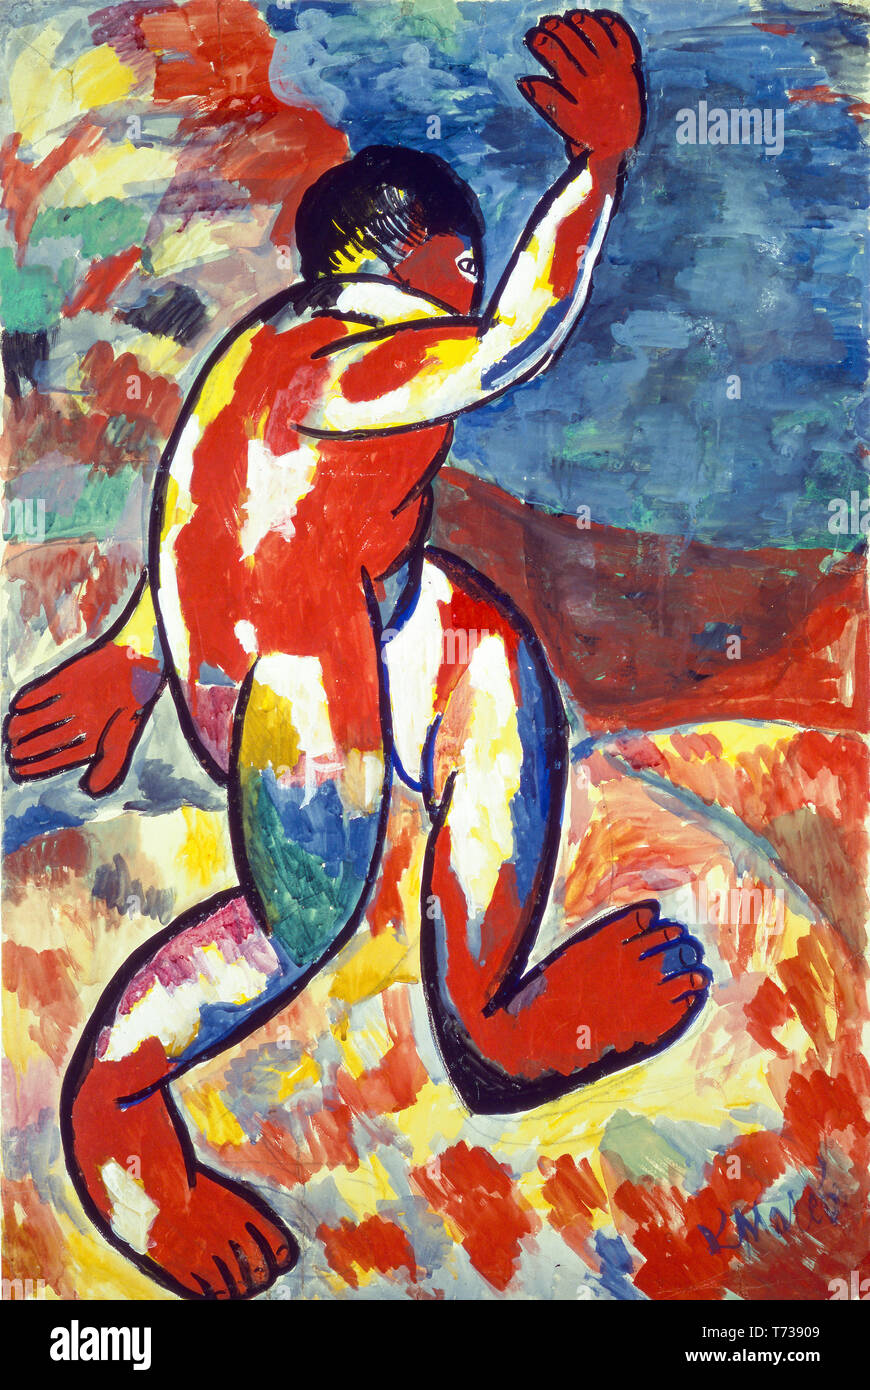 Kazimir Malevich, Bather, painting, 1911 - Stock Image